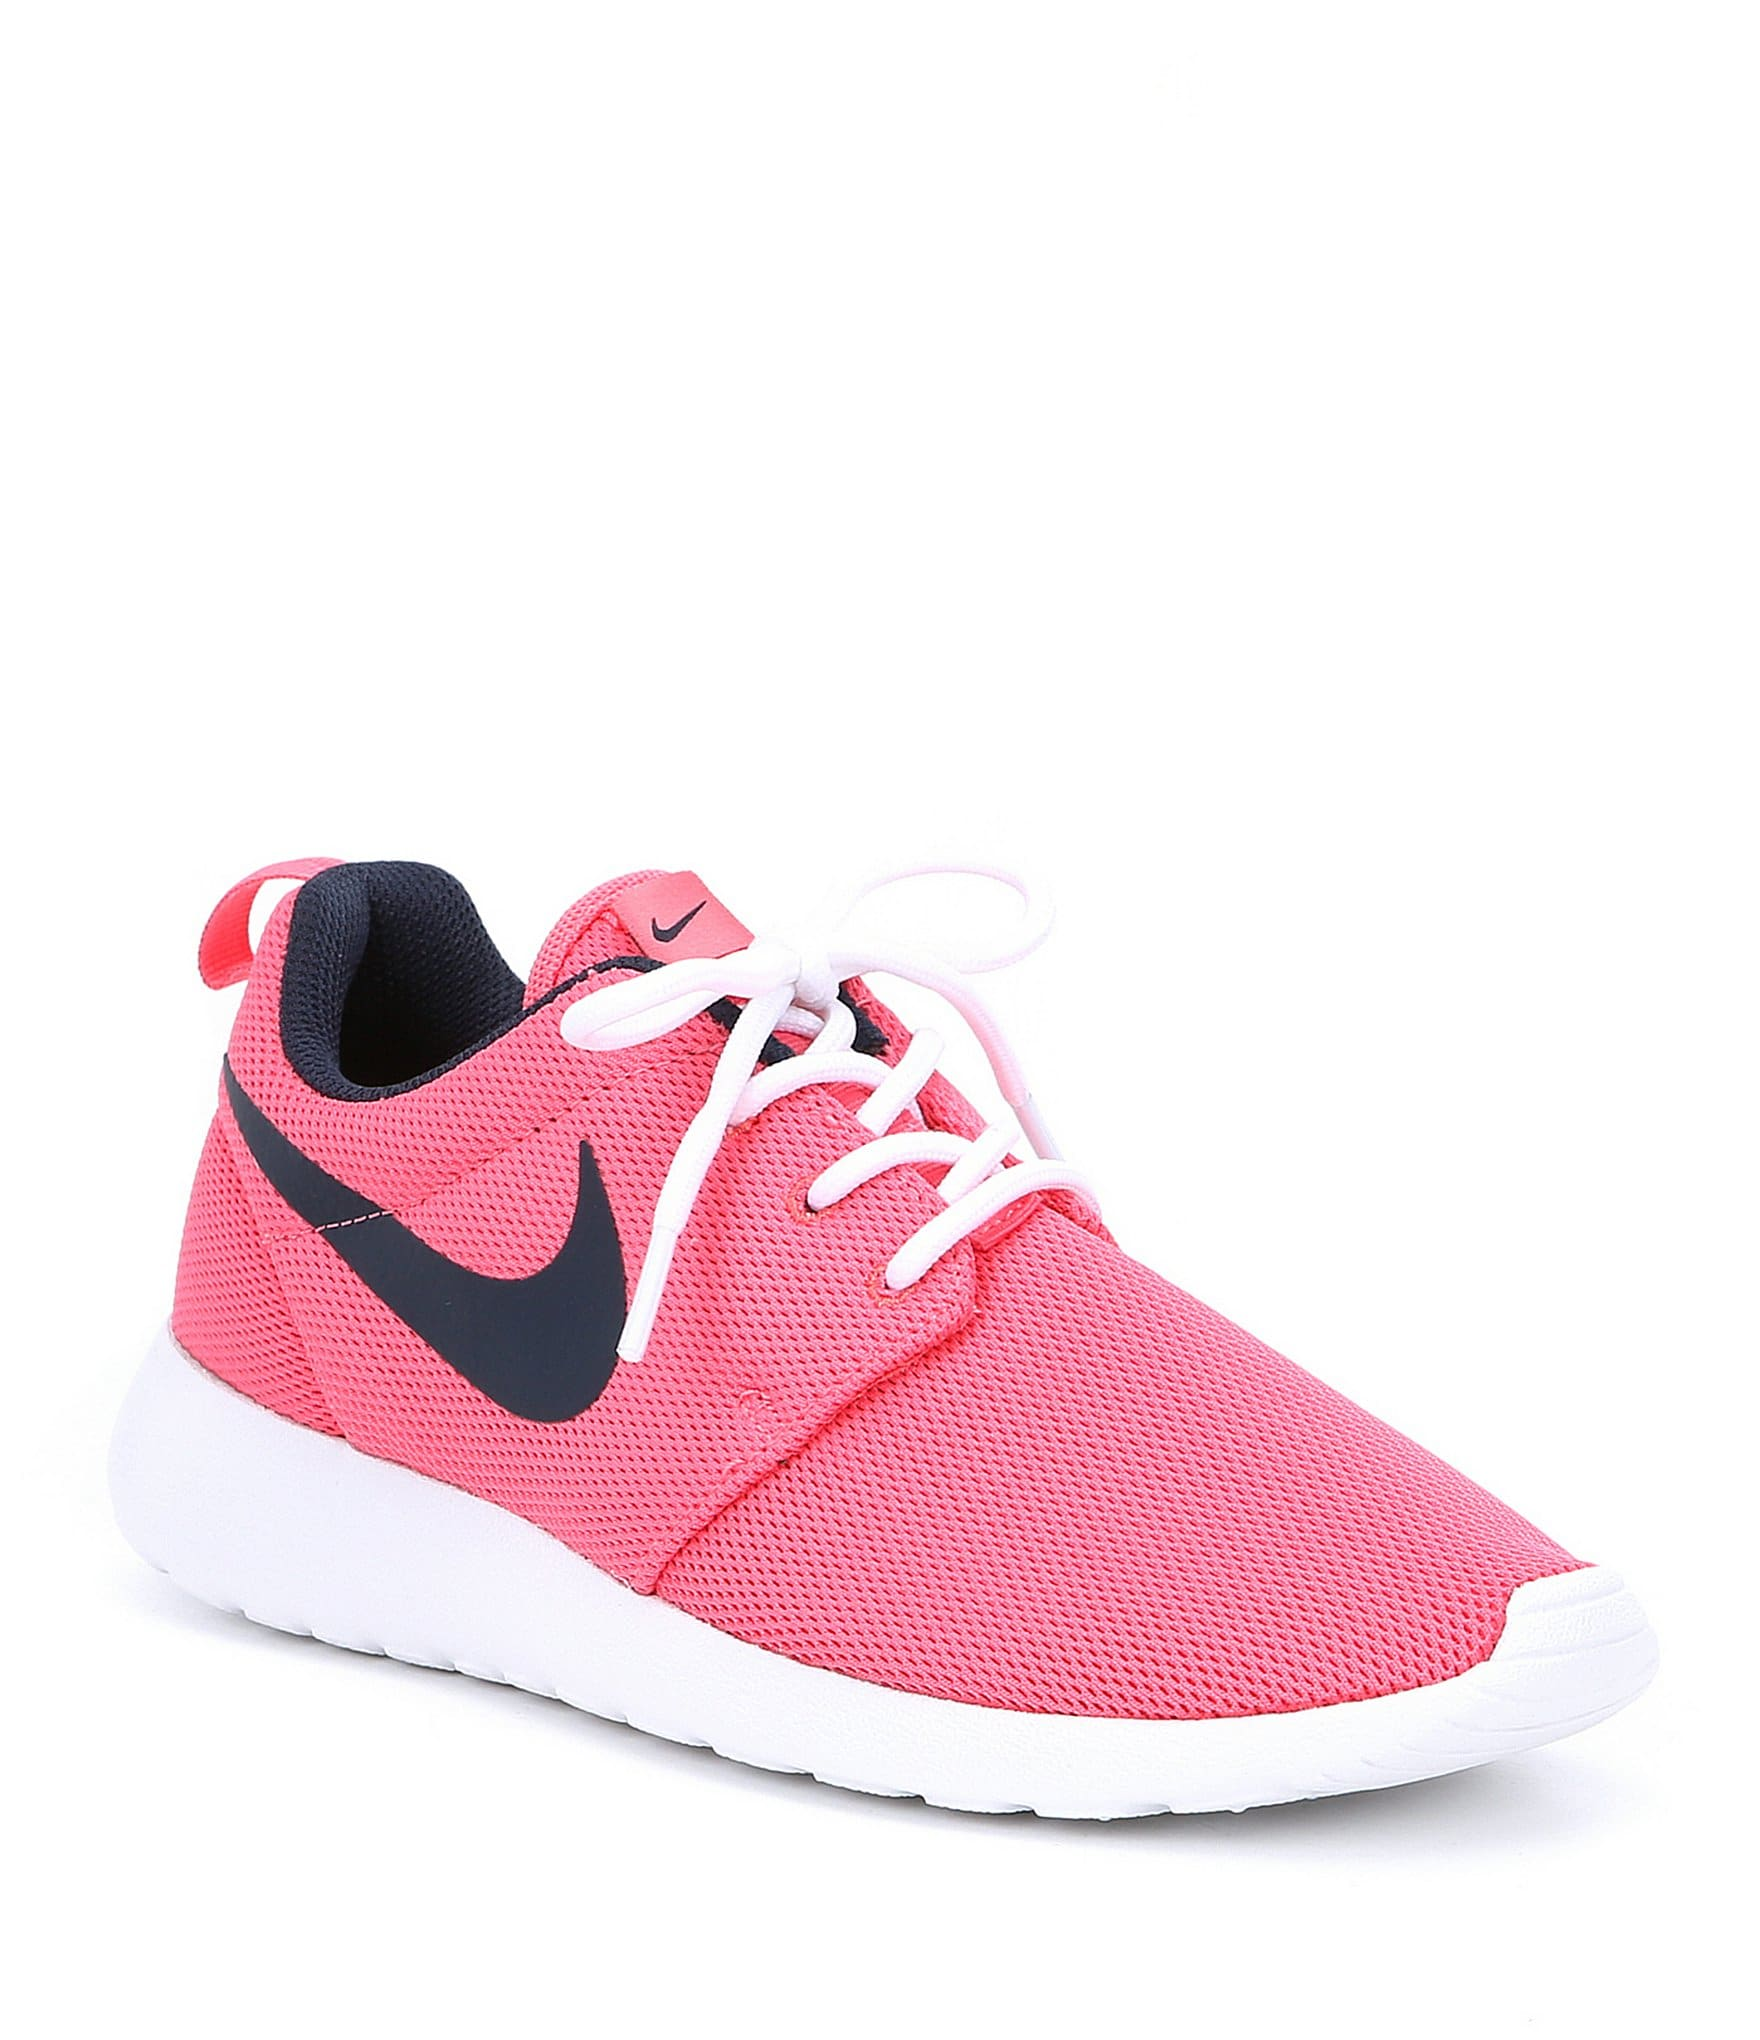 6pm nike shoes men's clearance suits online 836112